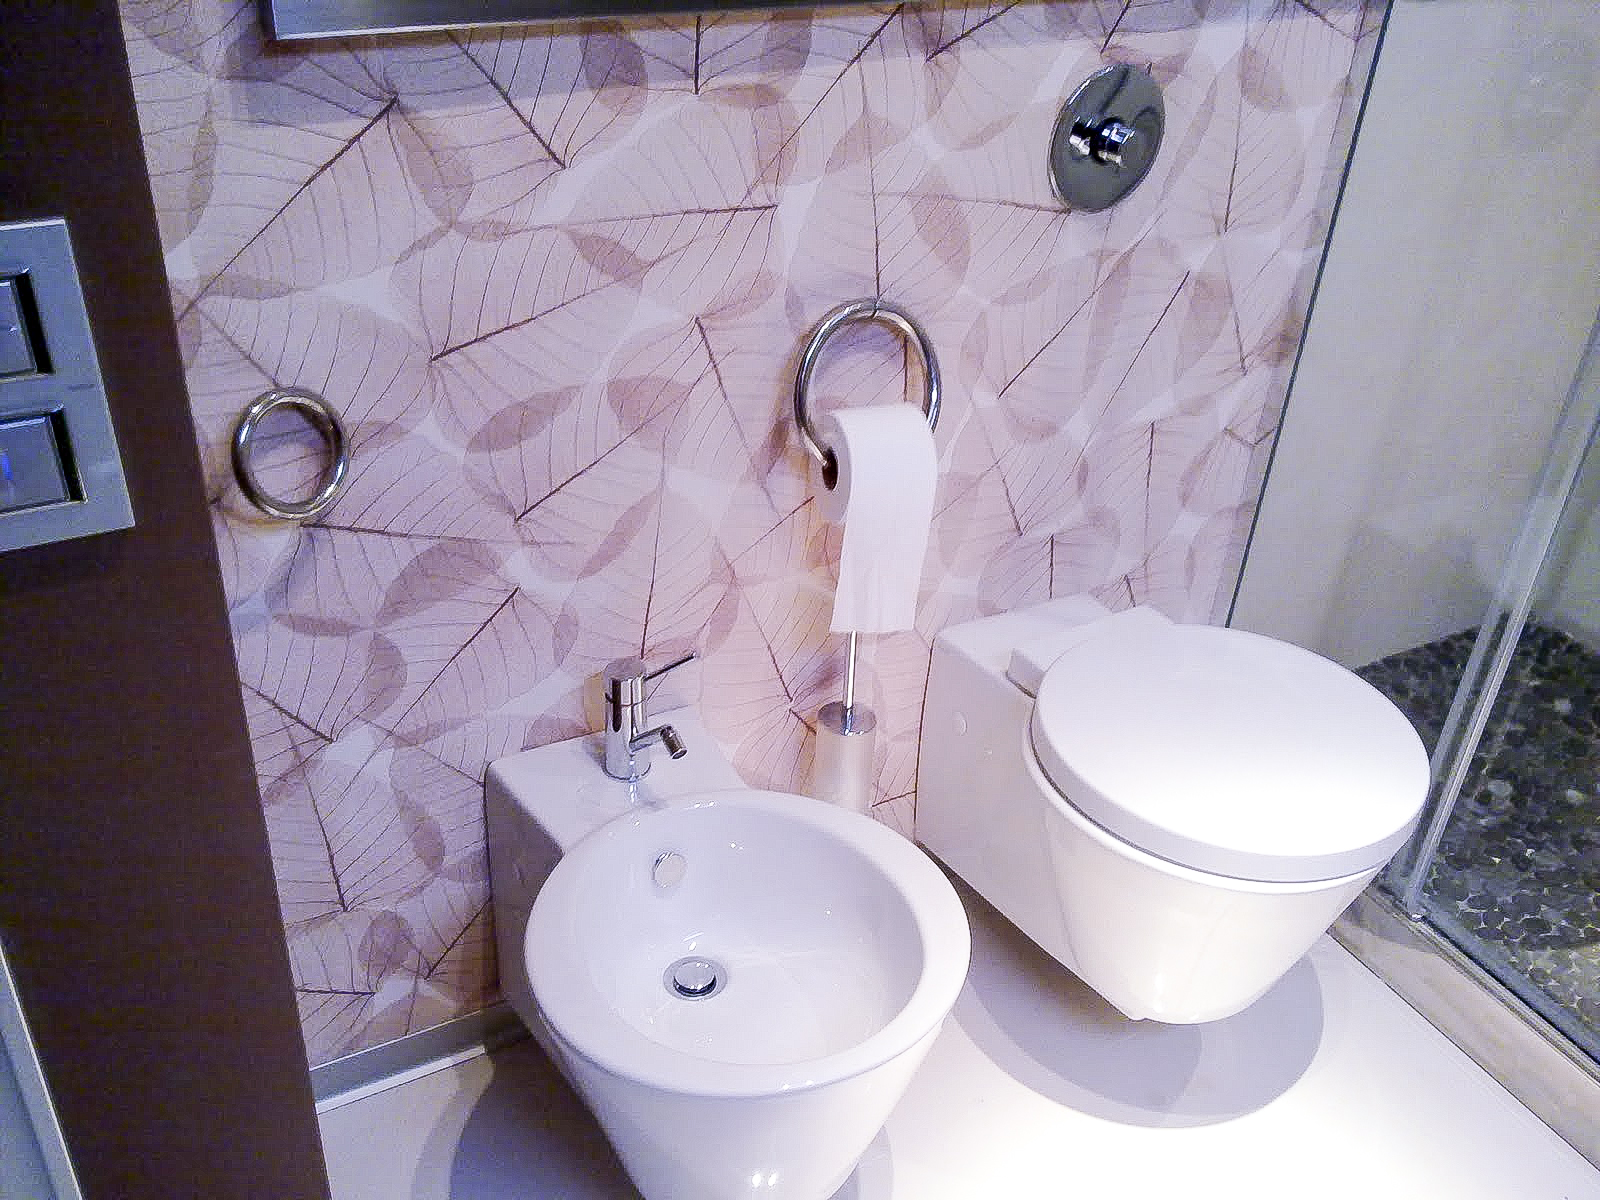 toilet and bidet wall mounted in a wall covered with wallpaper